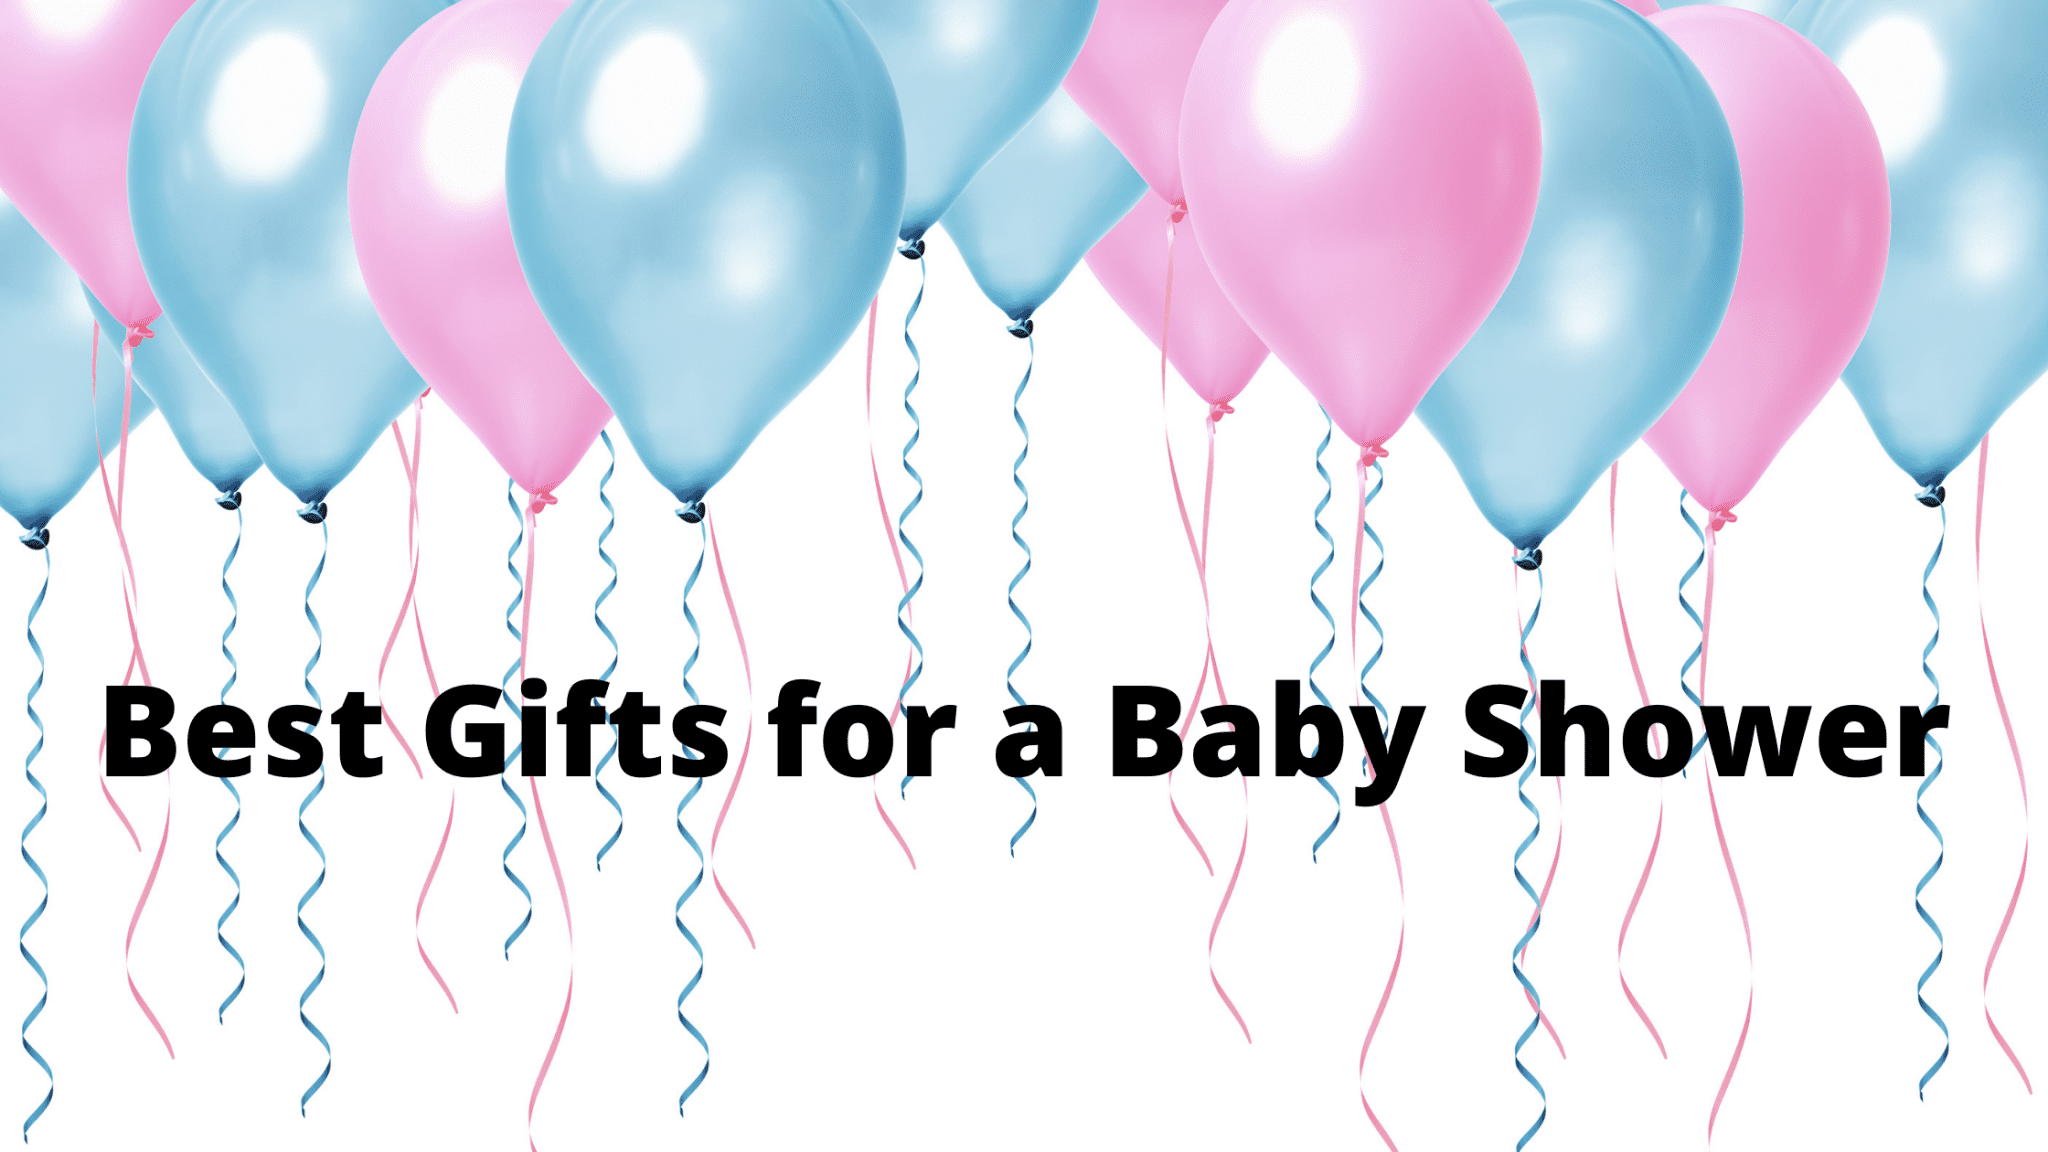 Best Gifts for a Baby Shower